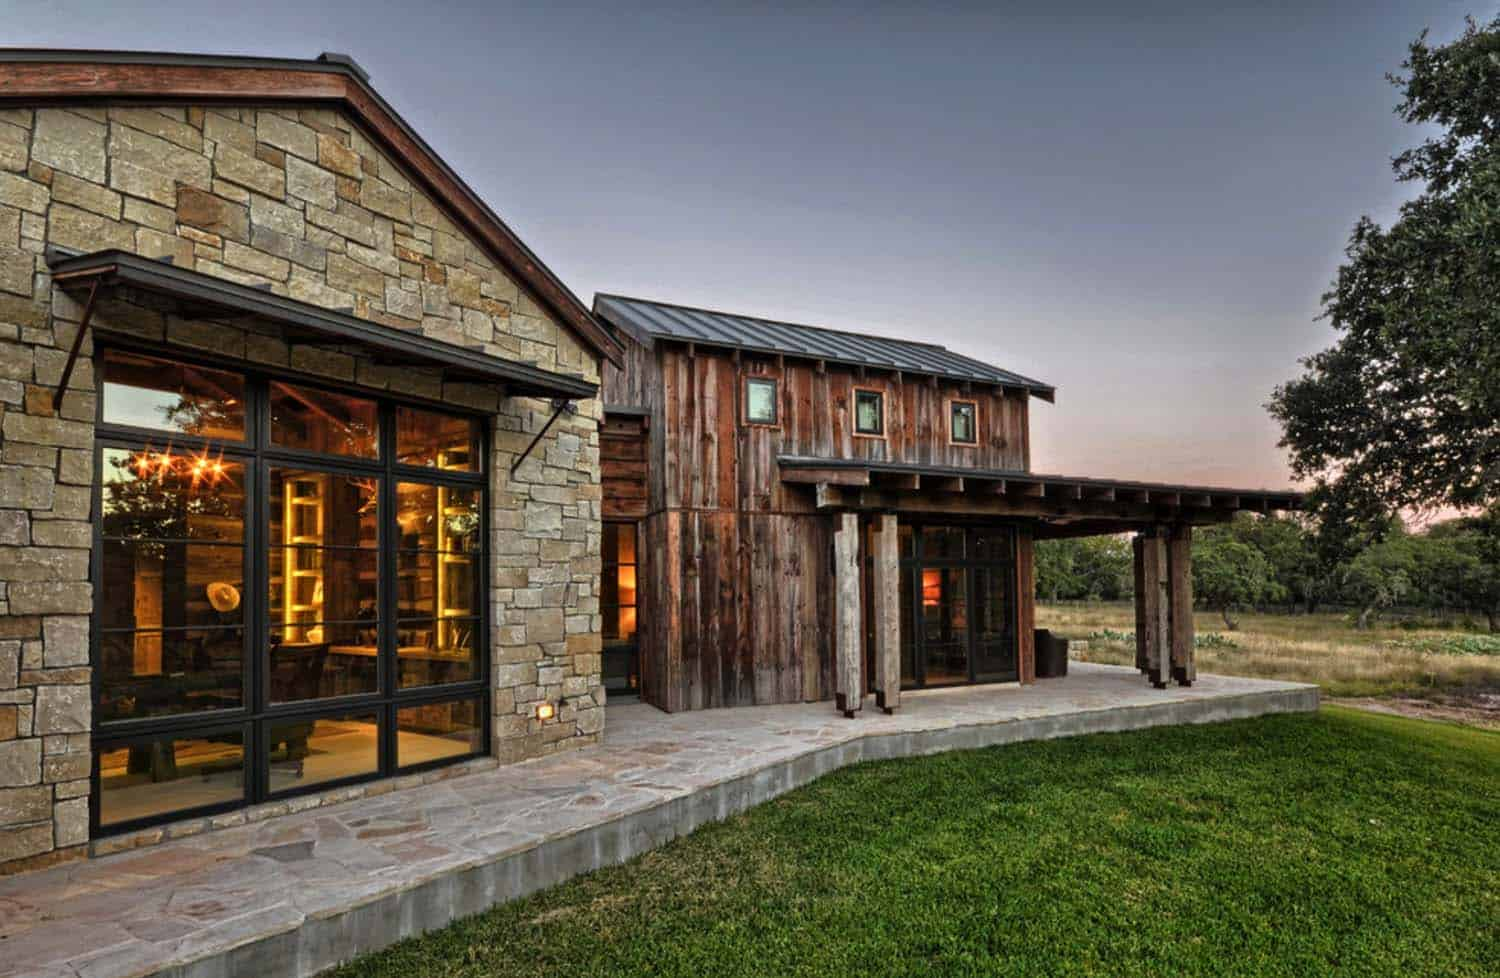 Rustic Country Bedroom Decorating Ideas Modern Rustic Barn Style Retreat In Texas Hill Country